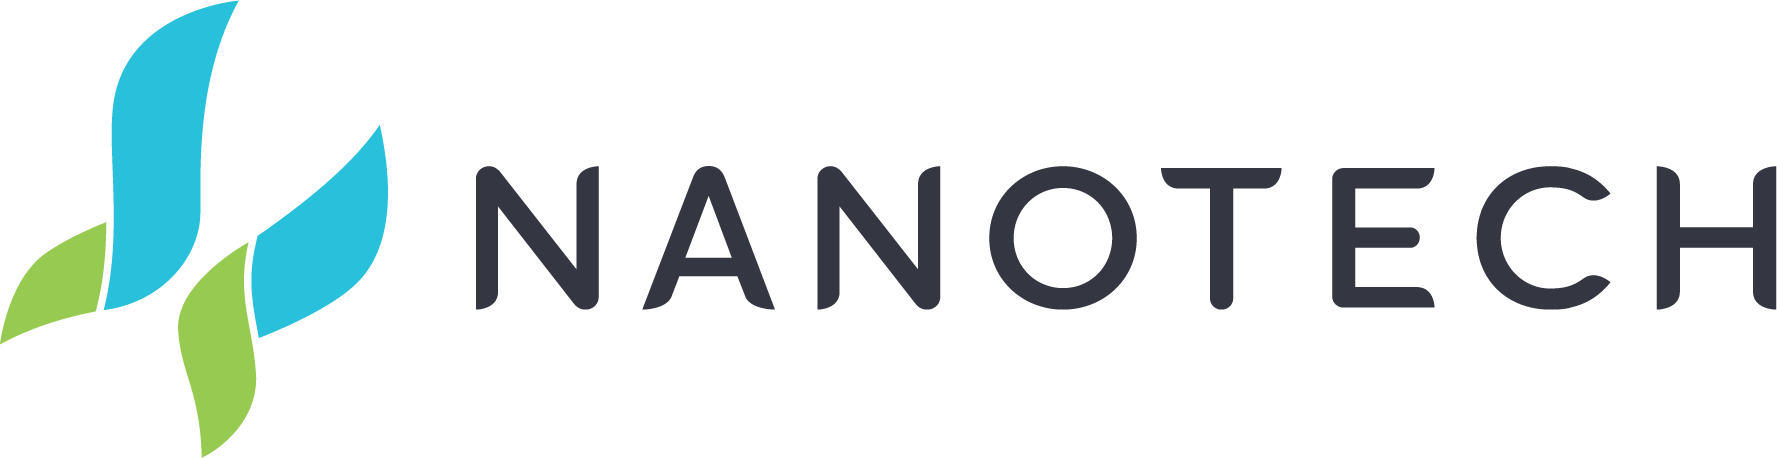 Nanotech Business Update Regarding COVID-19